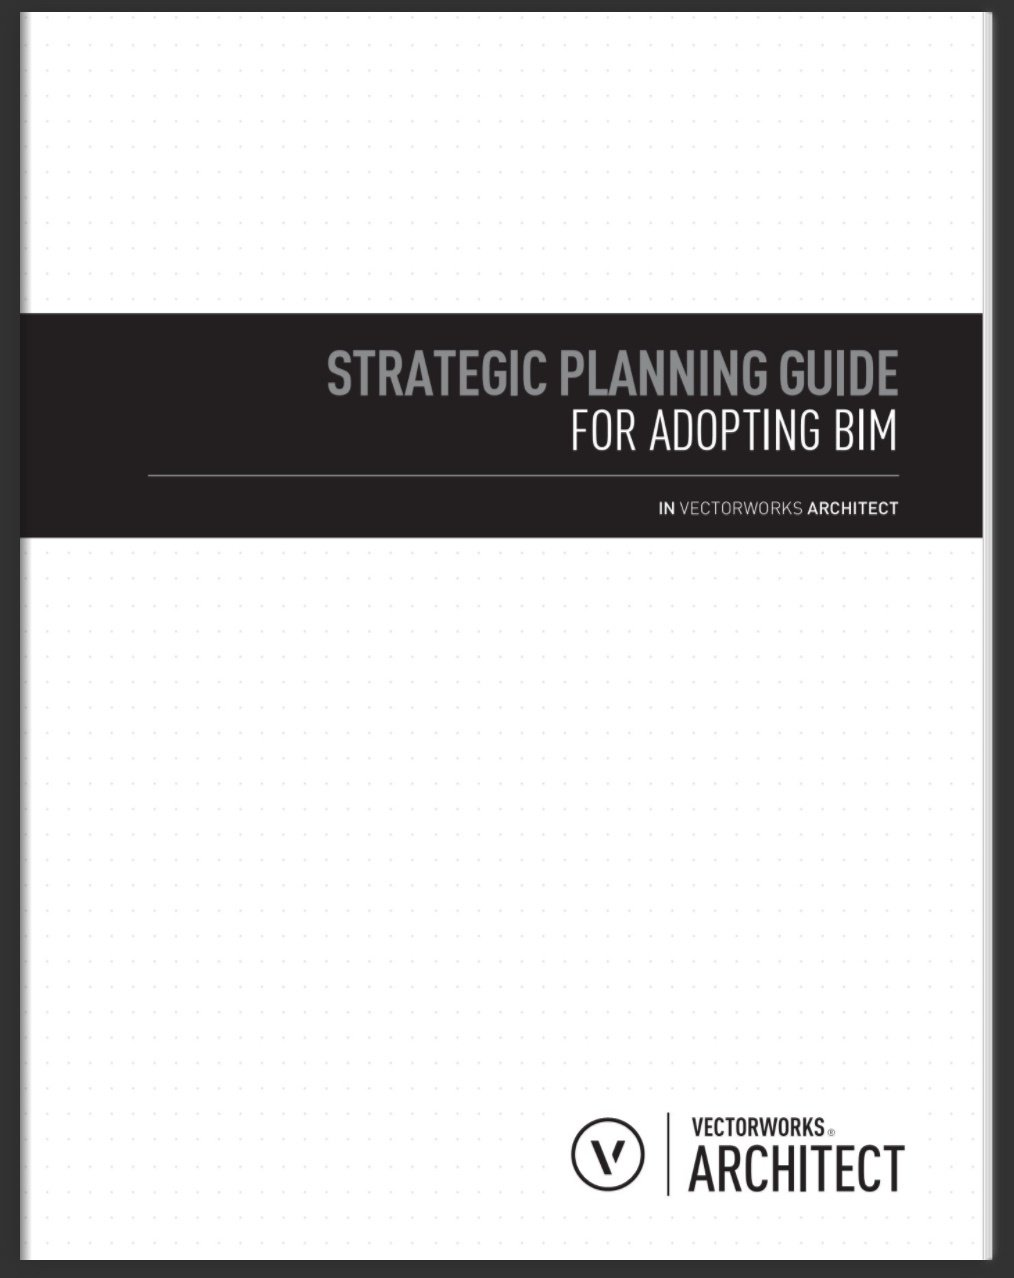 Strategic Planning Guide 2.jpeg